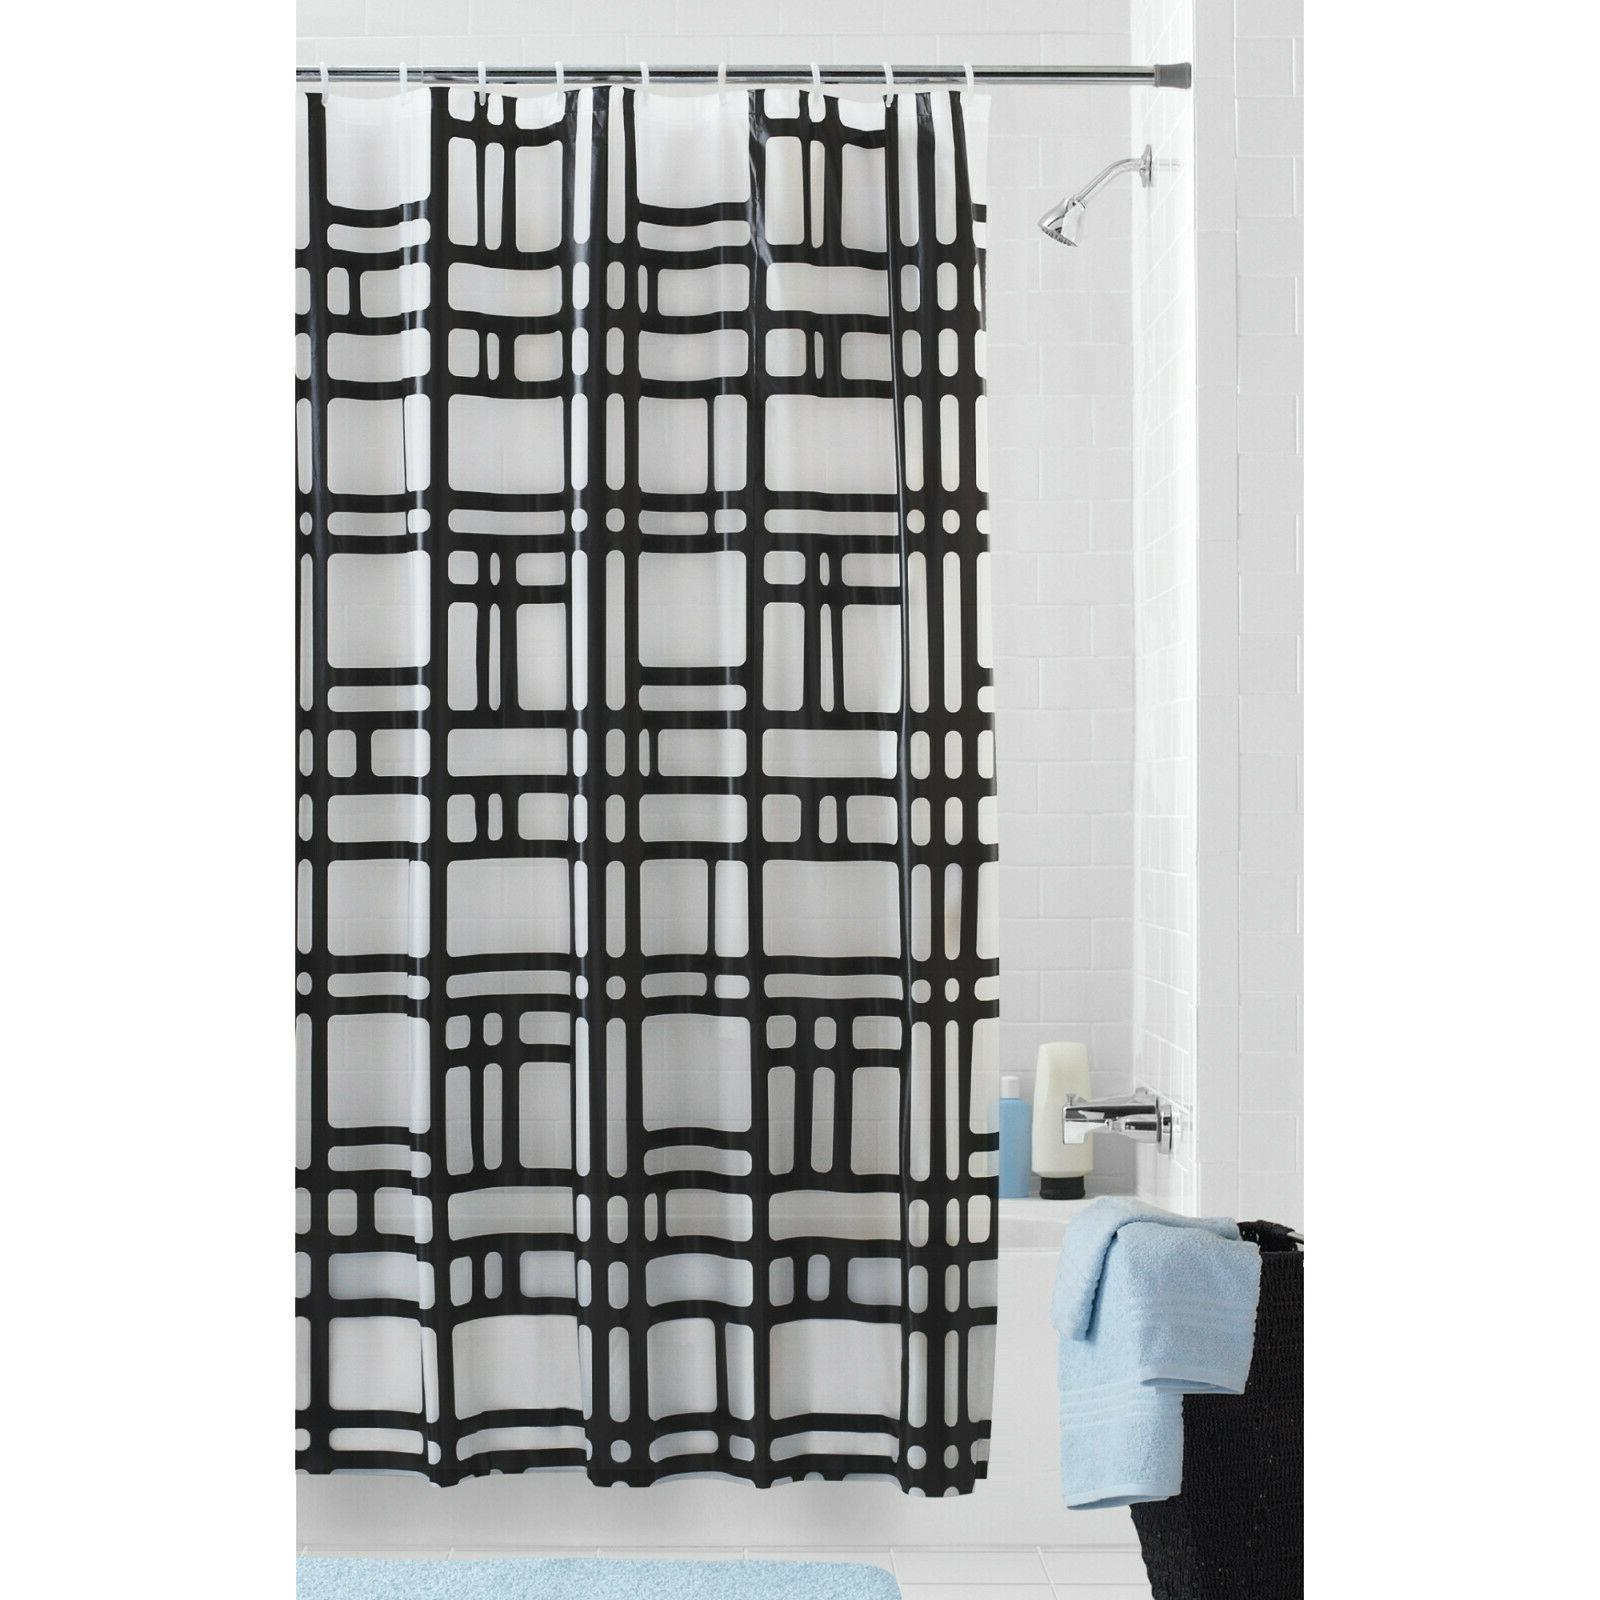 Geometric Patterned Frosted Background Shower Curtain, Moder